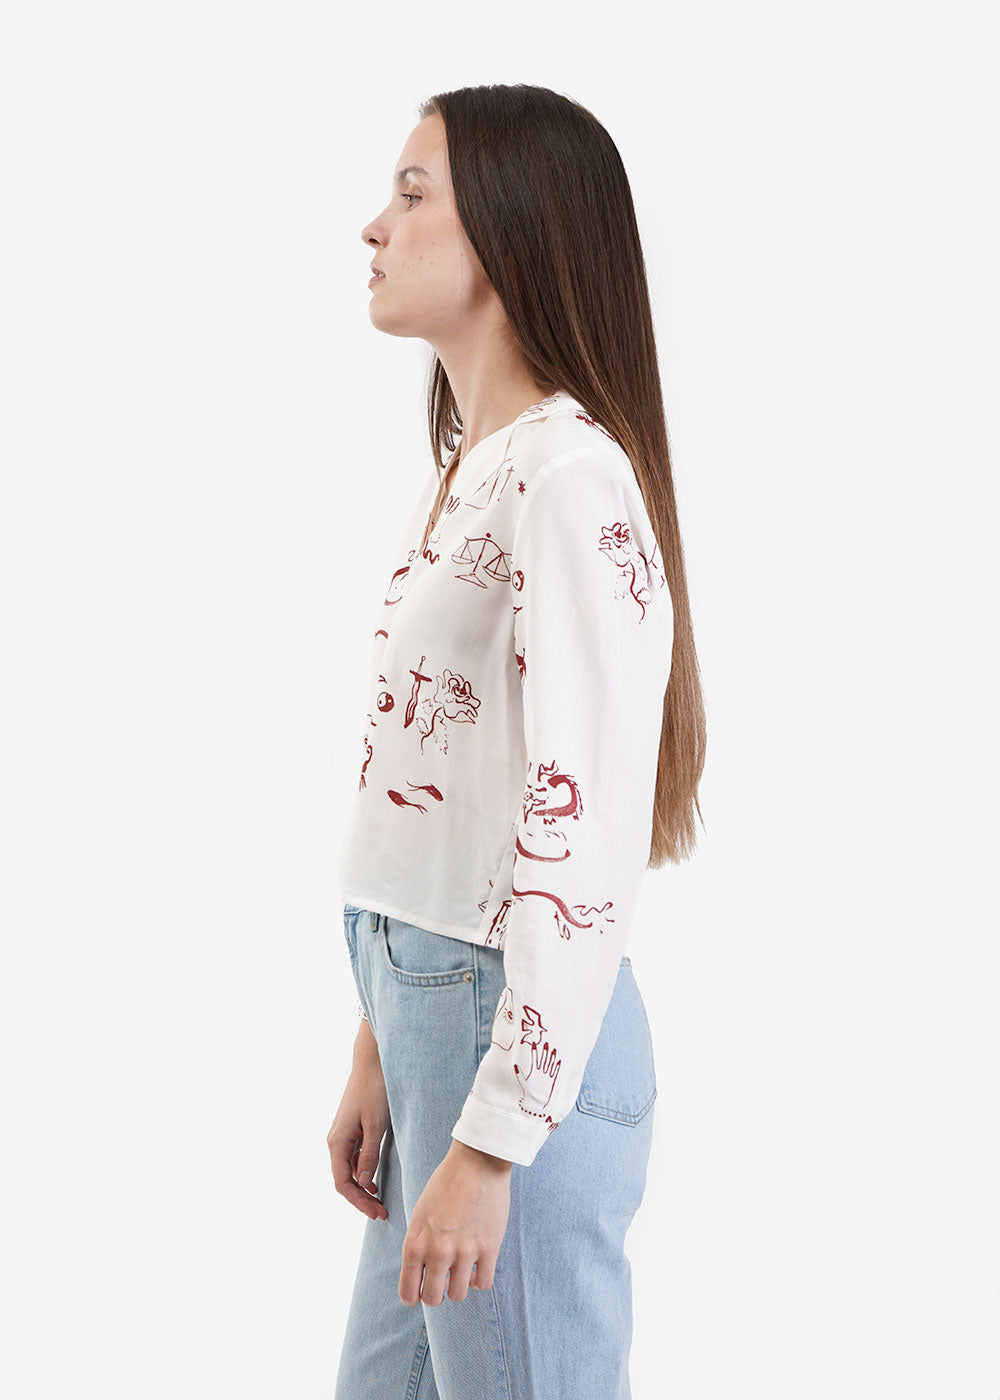 Paloma Wool Tarot Blouse — Shop sustainable fashion and slow fashion at New Classics Studios